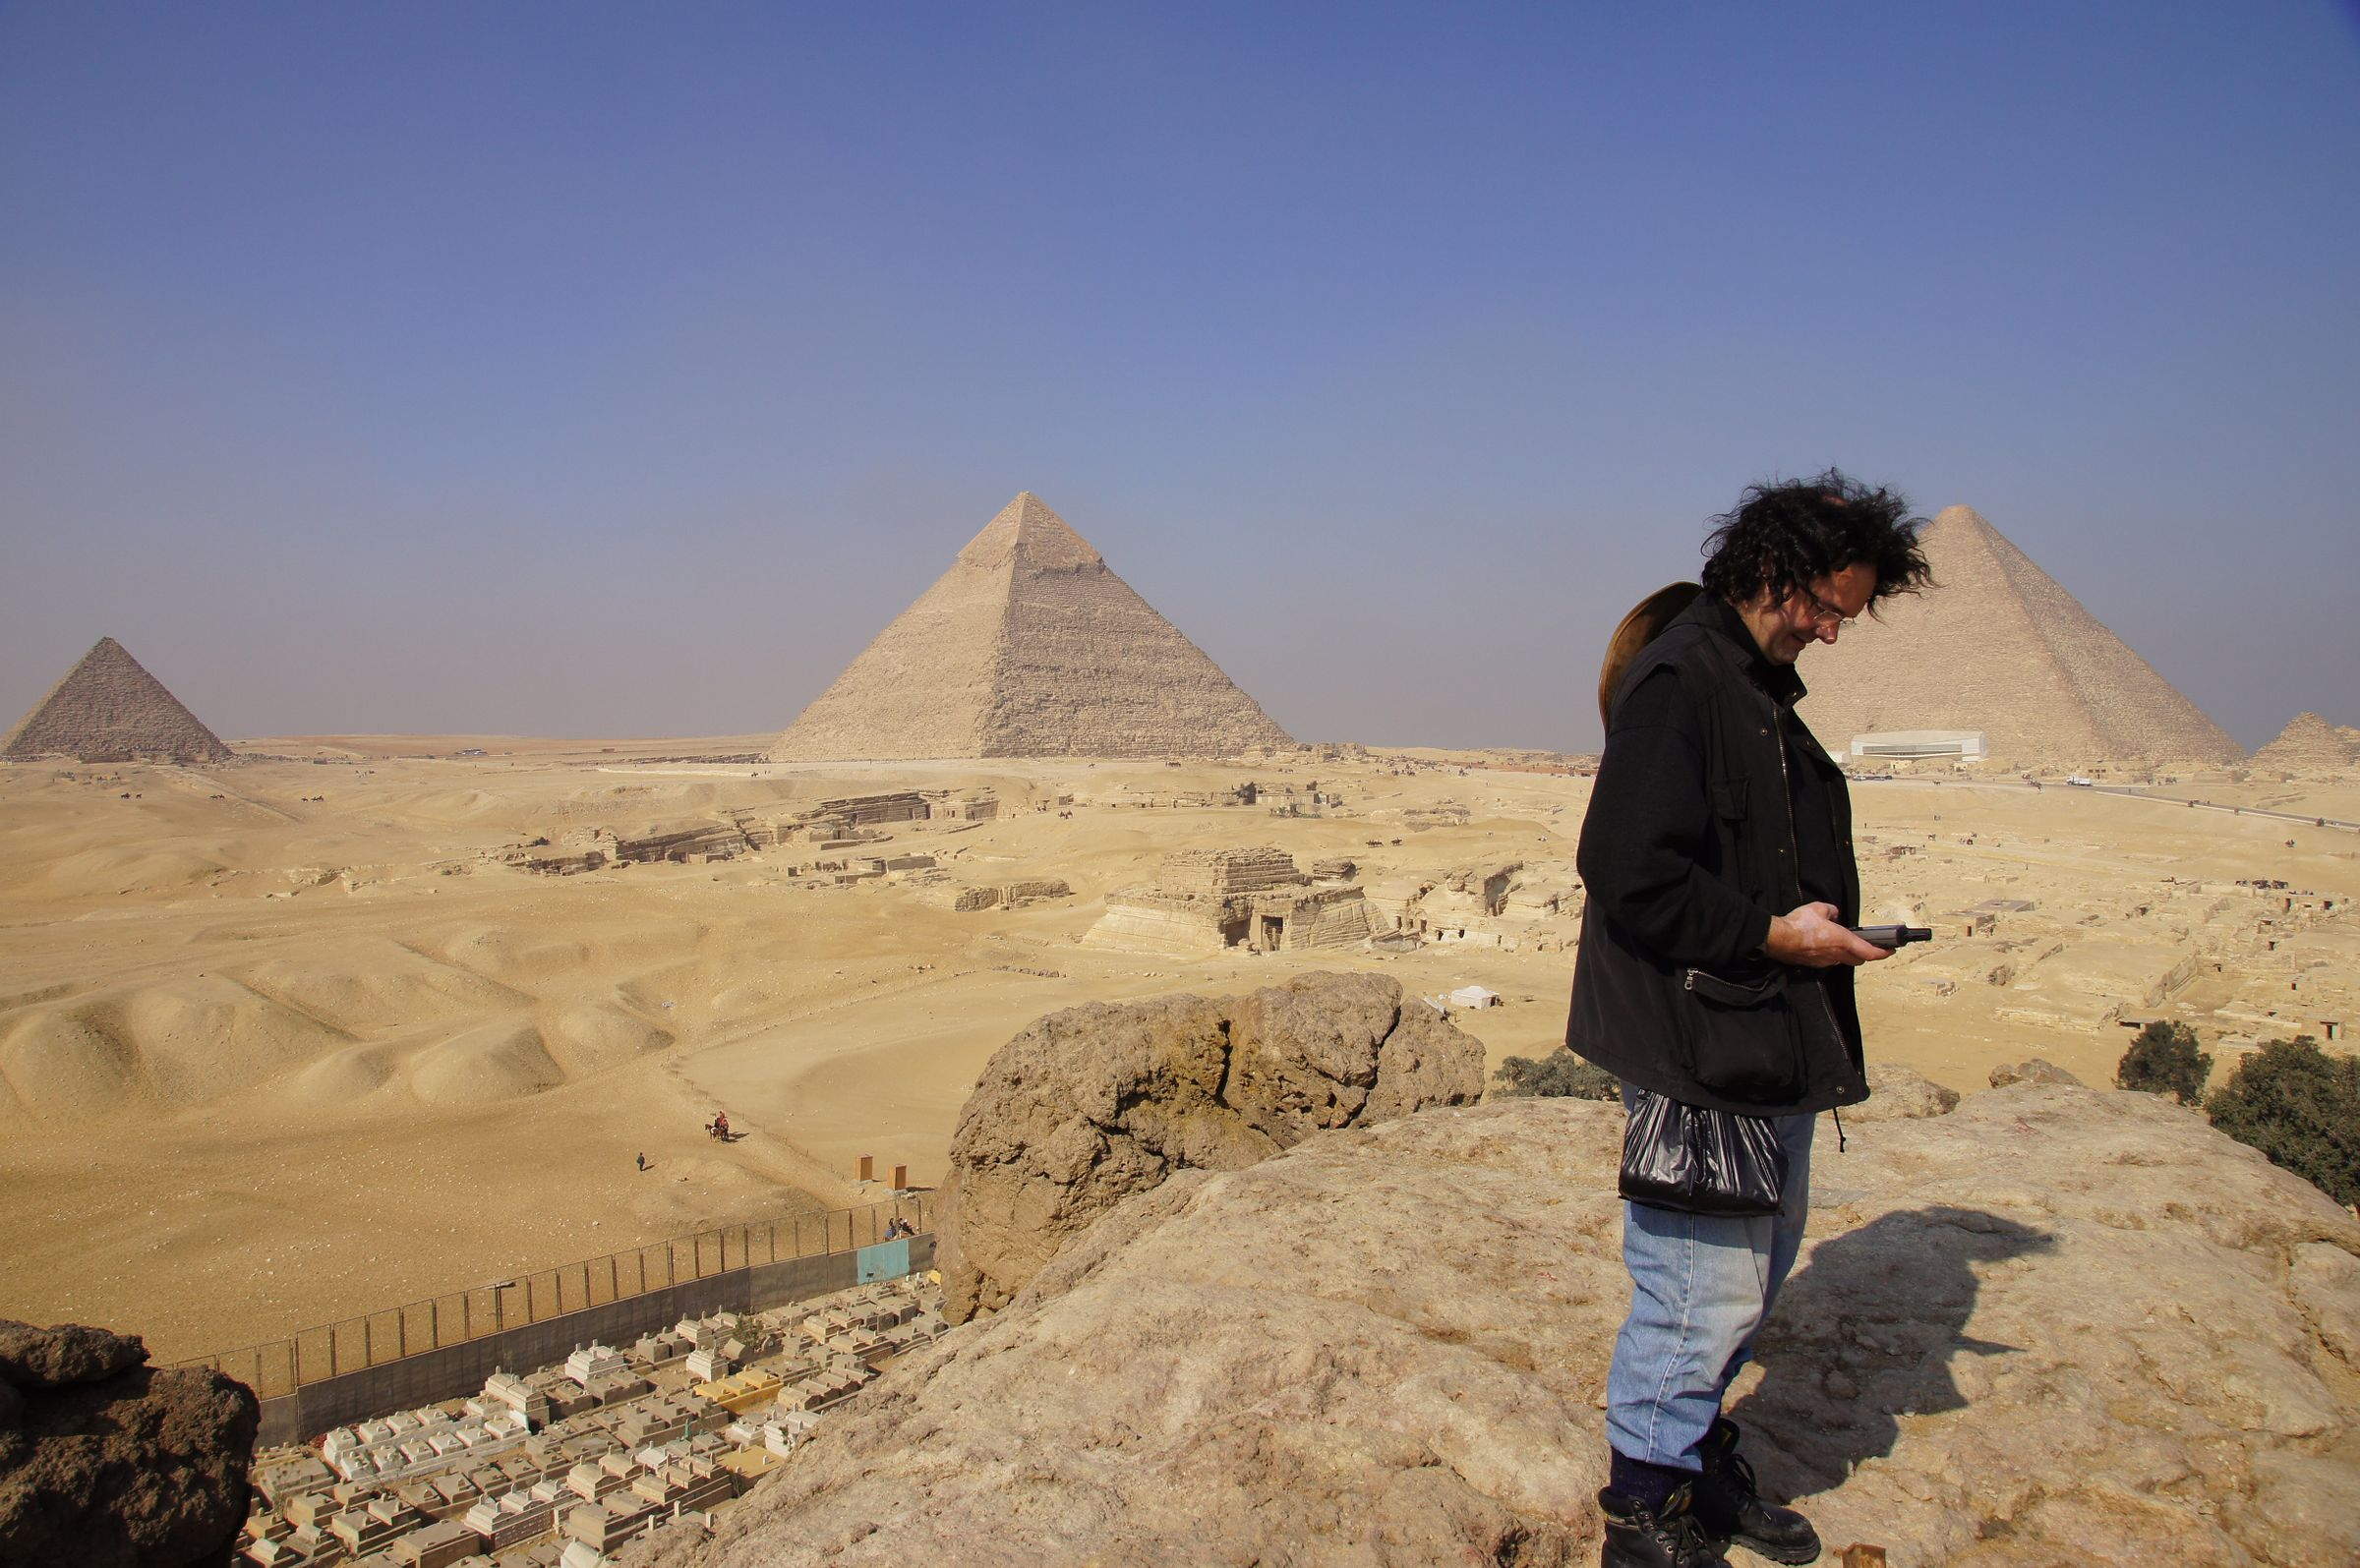 General View: Site: Giza; View: Southern Mount, Menkaure Pyramid, Khafre Pyramid, Khufu Pyramid, G 8400, Central Field, Muslim Cemetery